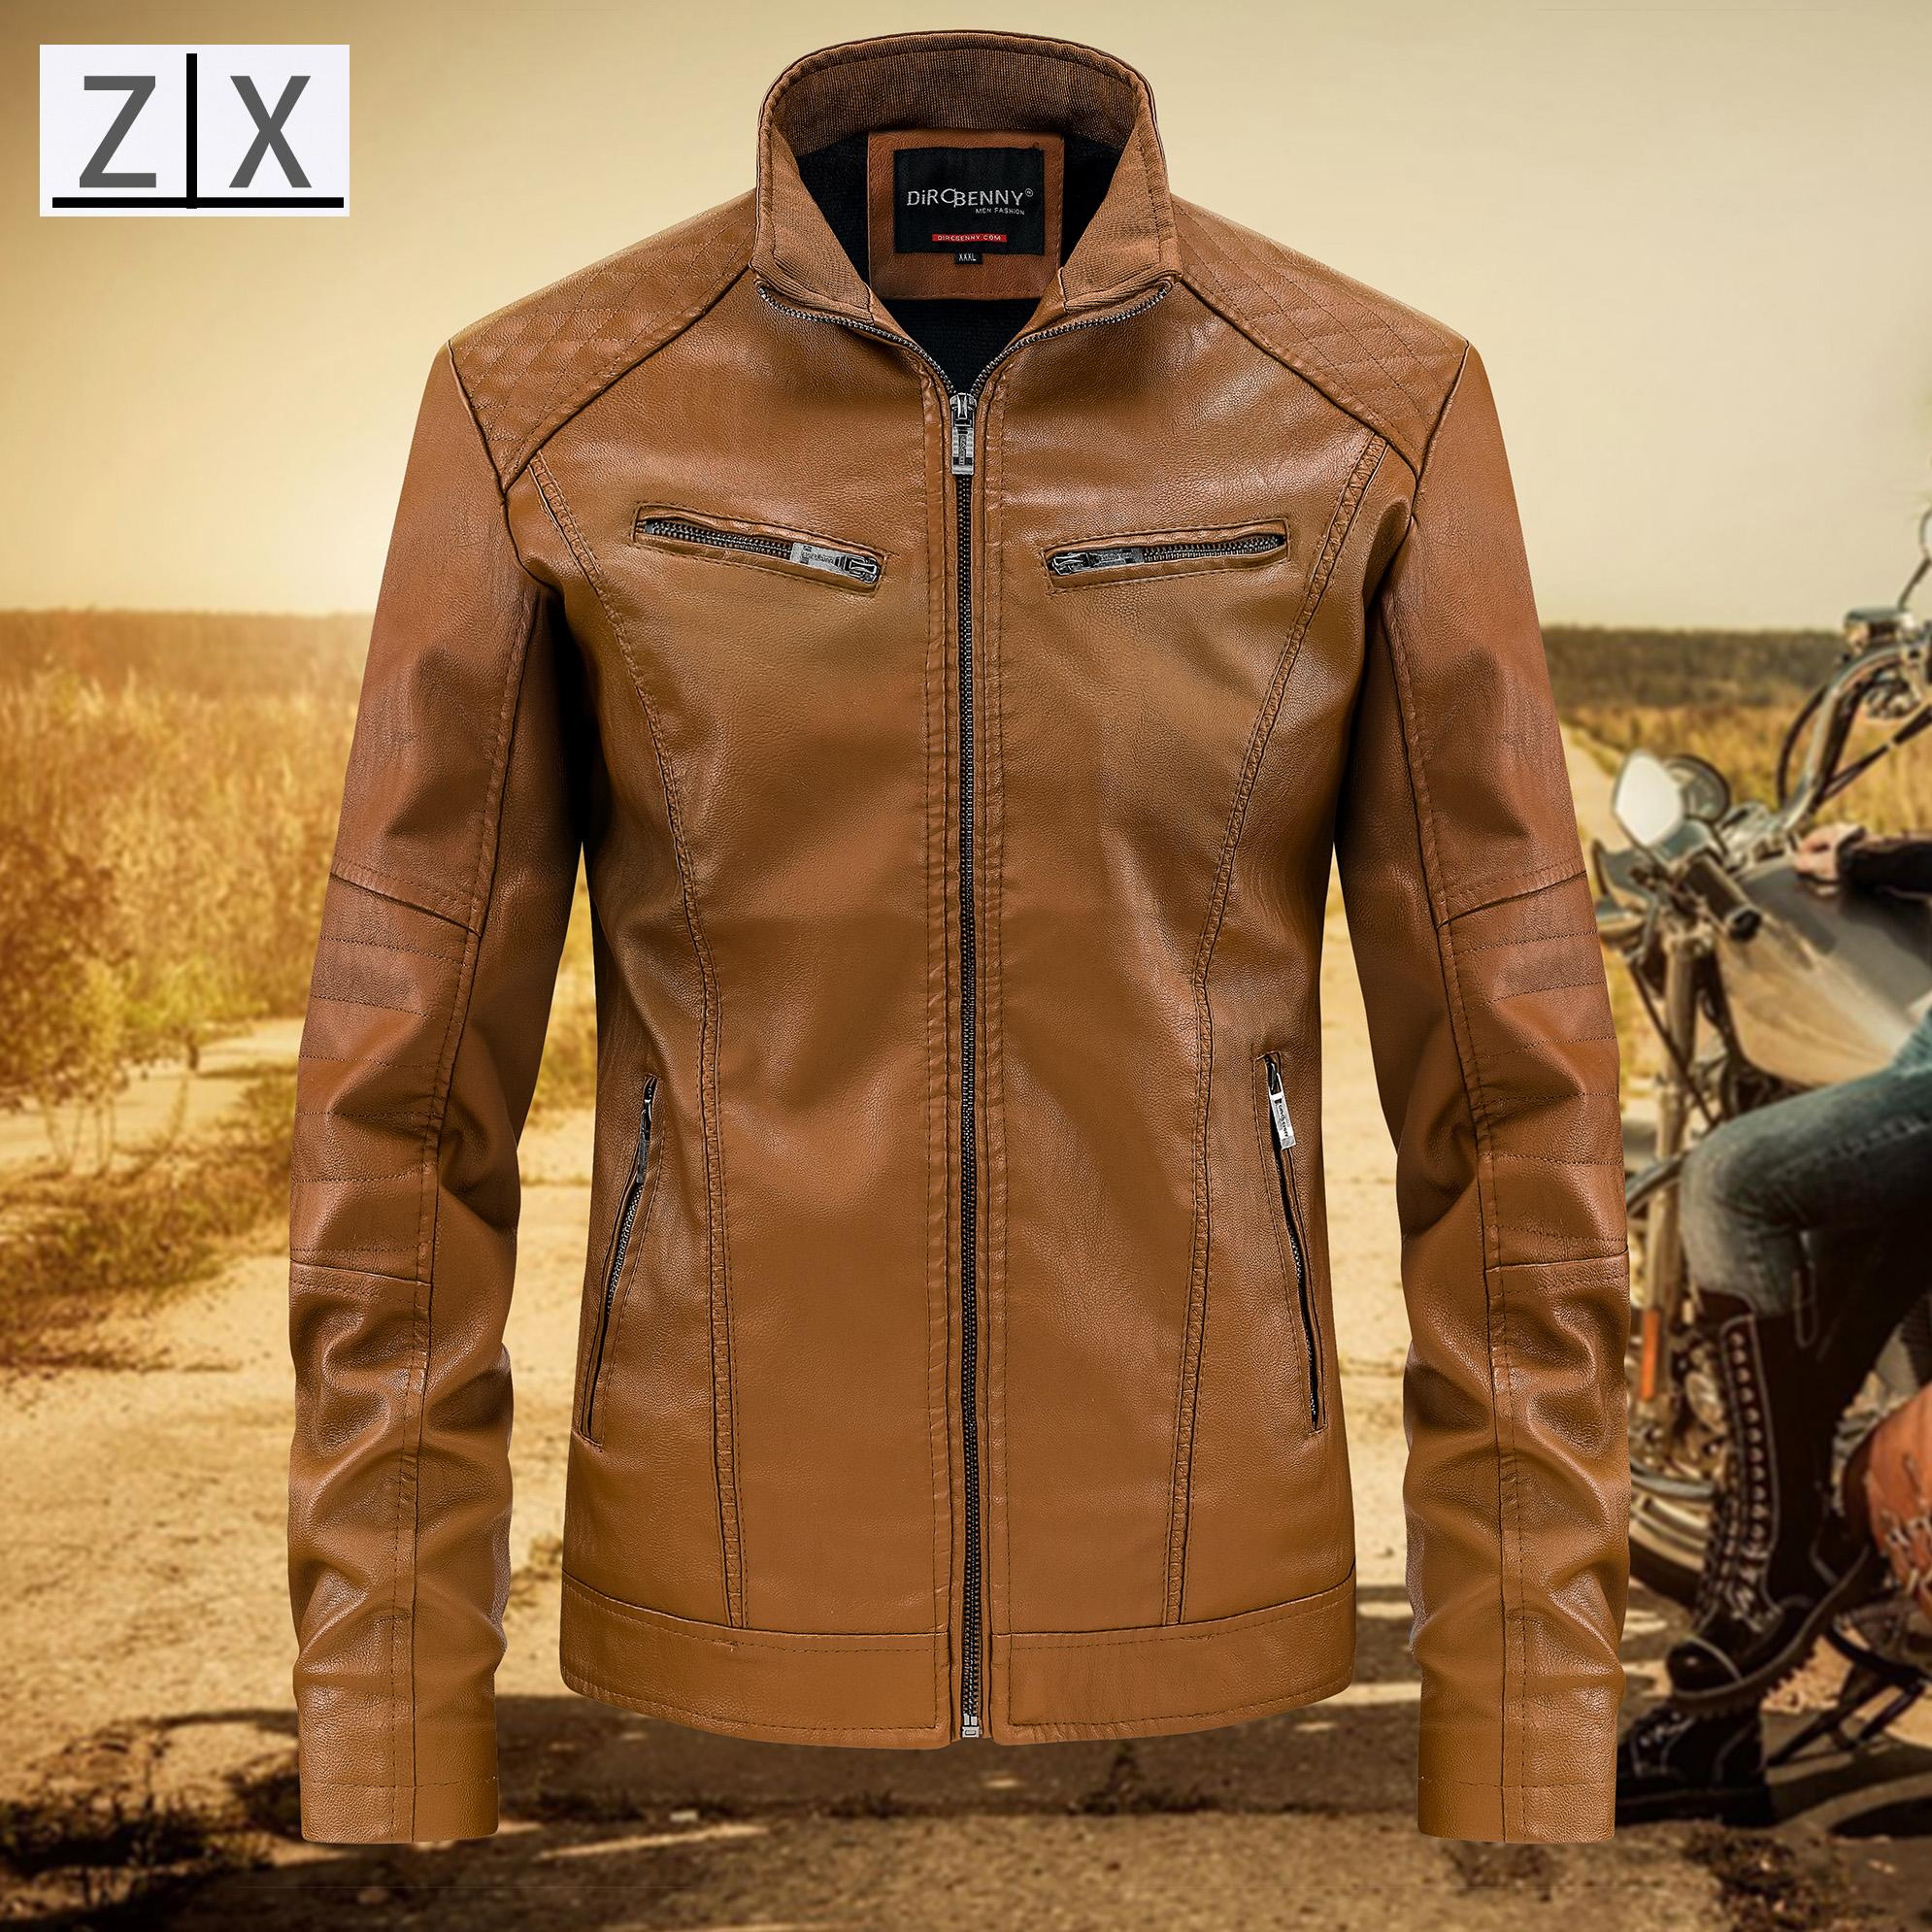 Usa Motorcycle Leather Jacket For Man Dircbenny By Zxjeans.